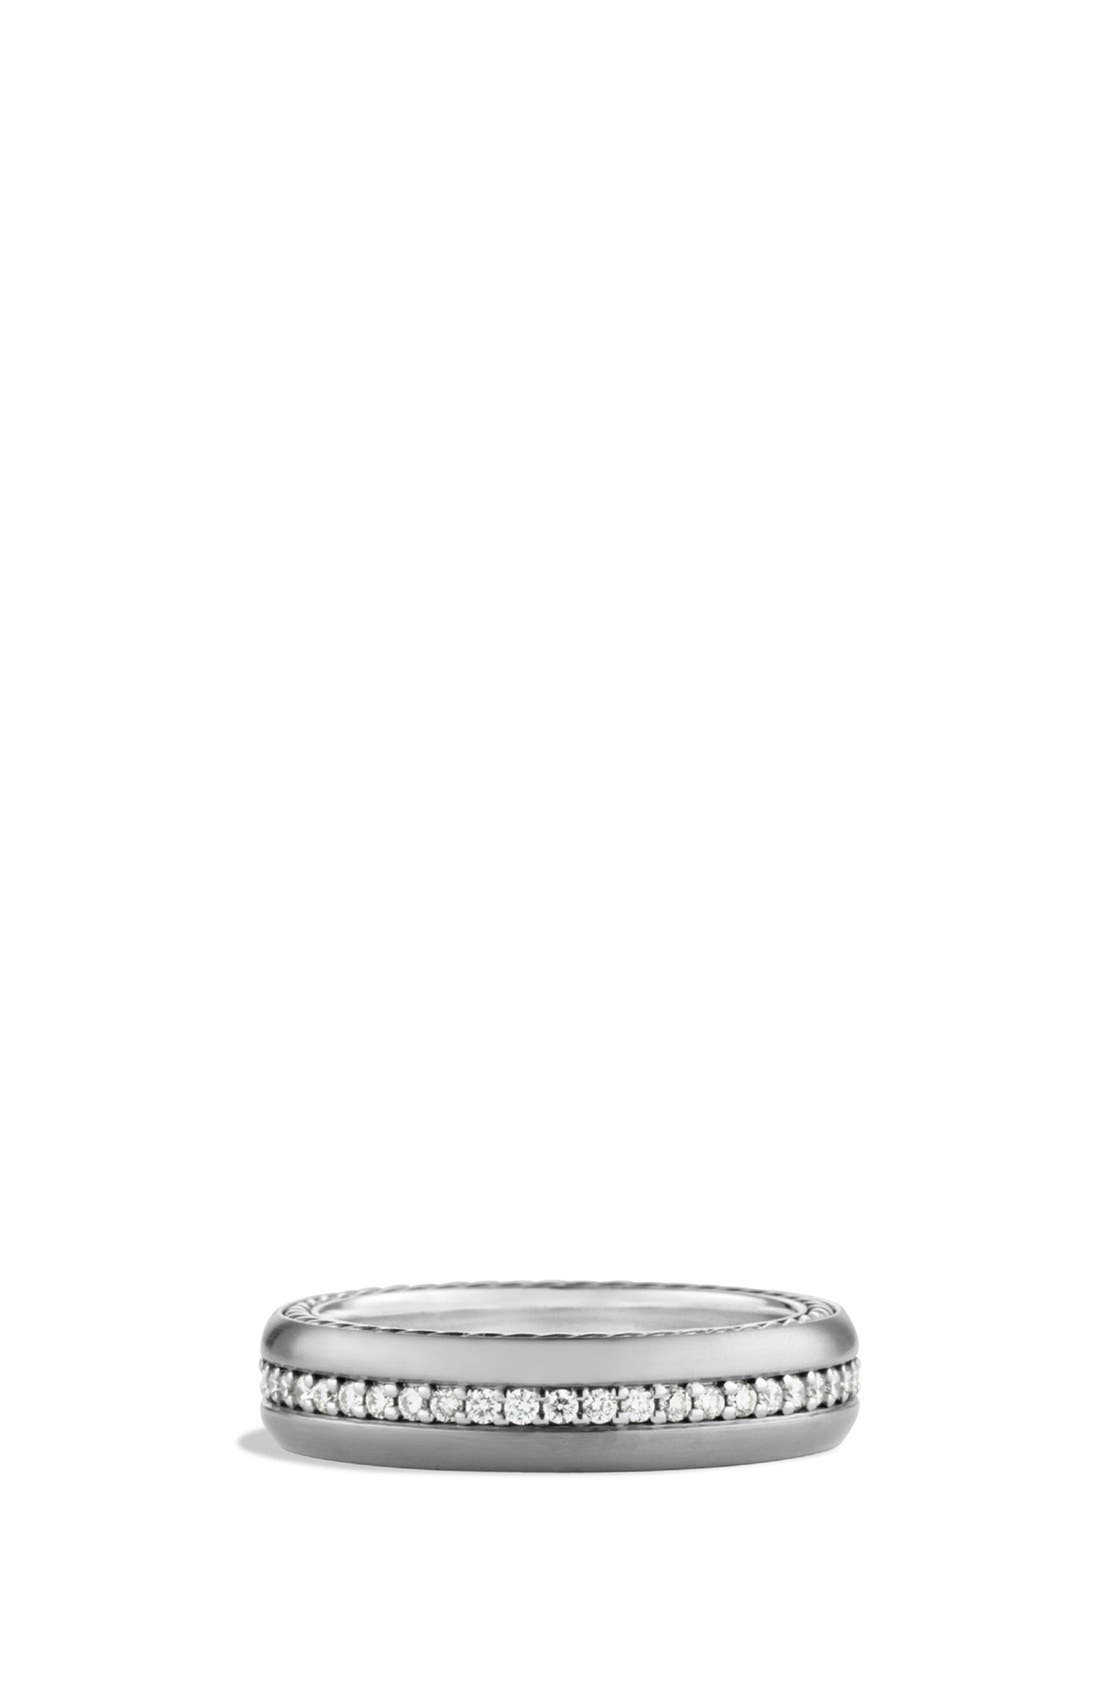 'Streamline' Narrow Band Ring with Diamonds,                             Main thumbnail 1, color,                             DIAMOND